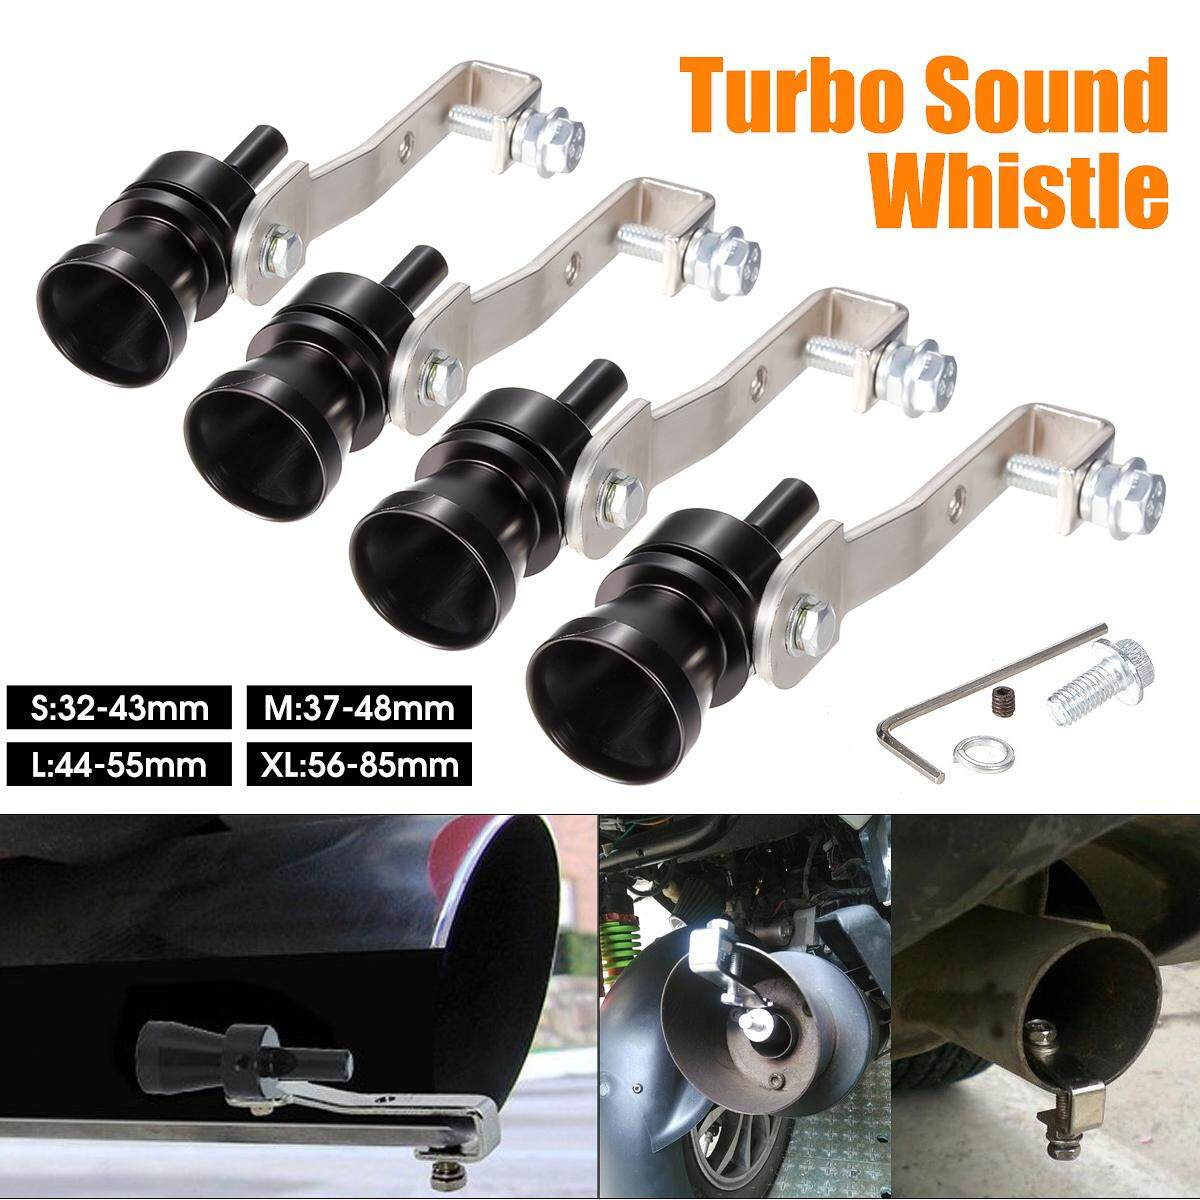 Universal small Purple Turbo Sound Exhaust Whistle Blow off Valve Simulator S